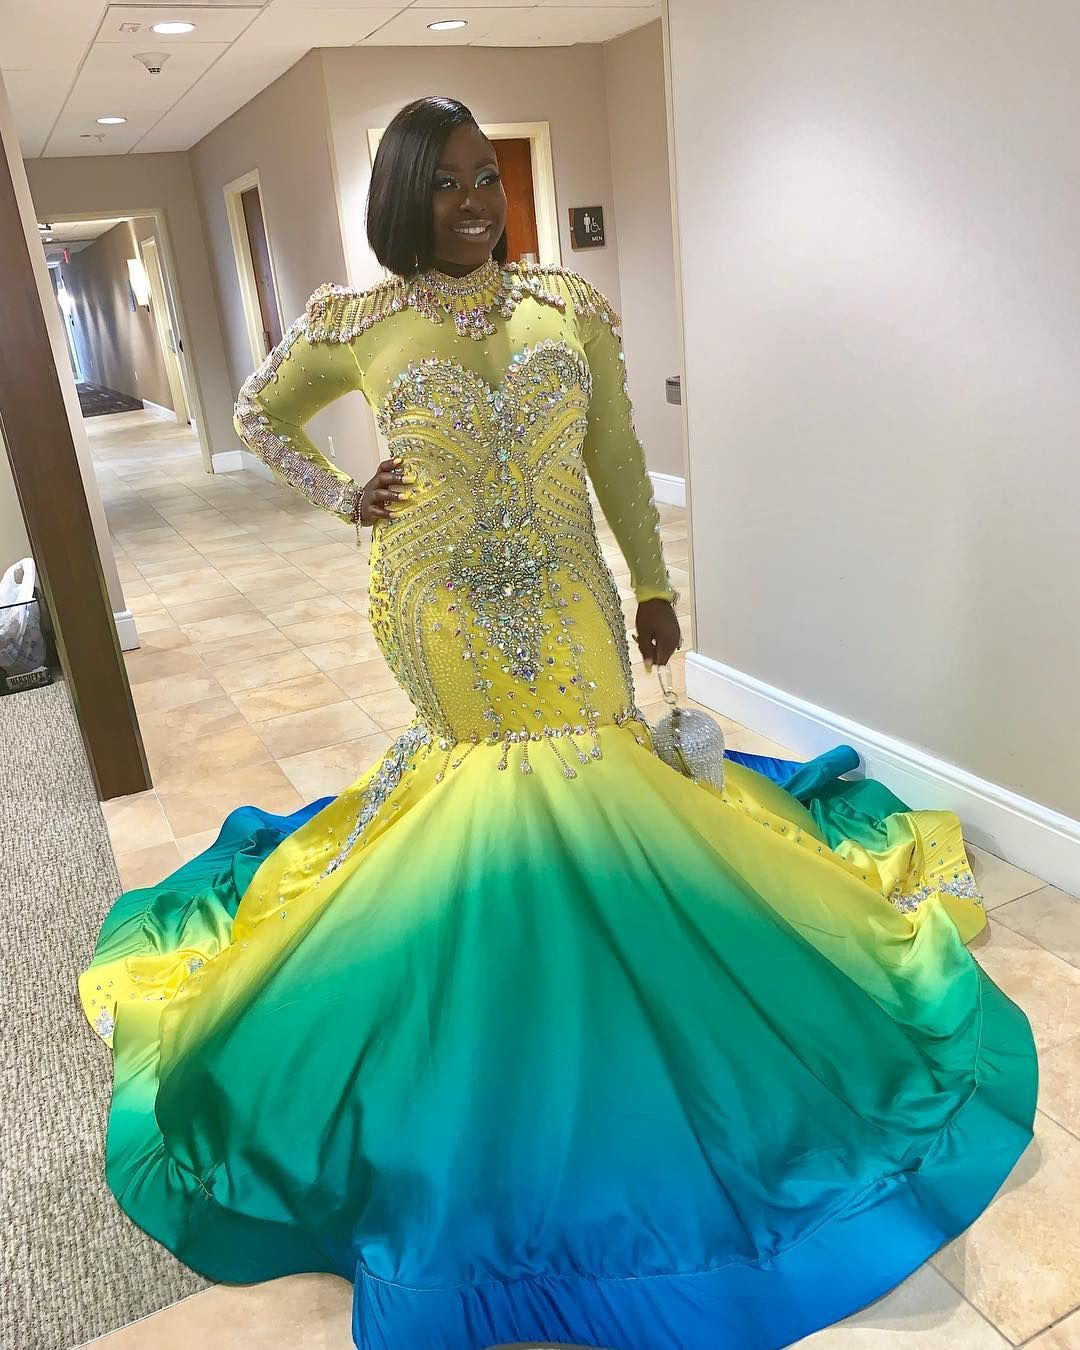 Cortney Toombs On Instagram I Ll Post More Later But Prom2k19 Prom Girl Dresses Classy Prom Dresses Gorgeous Prom Dresses [ 1350 x 1080 Pixel ]